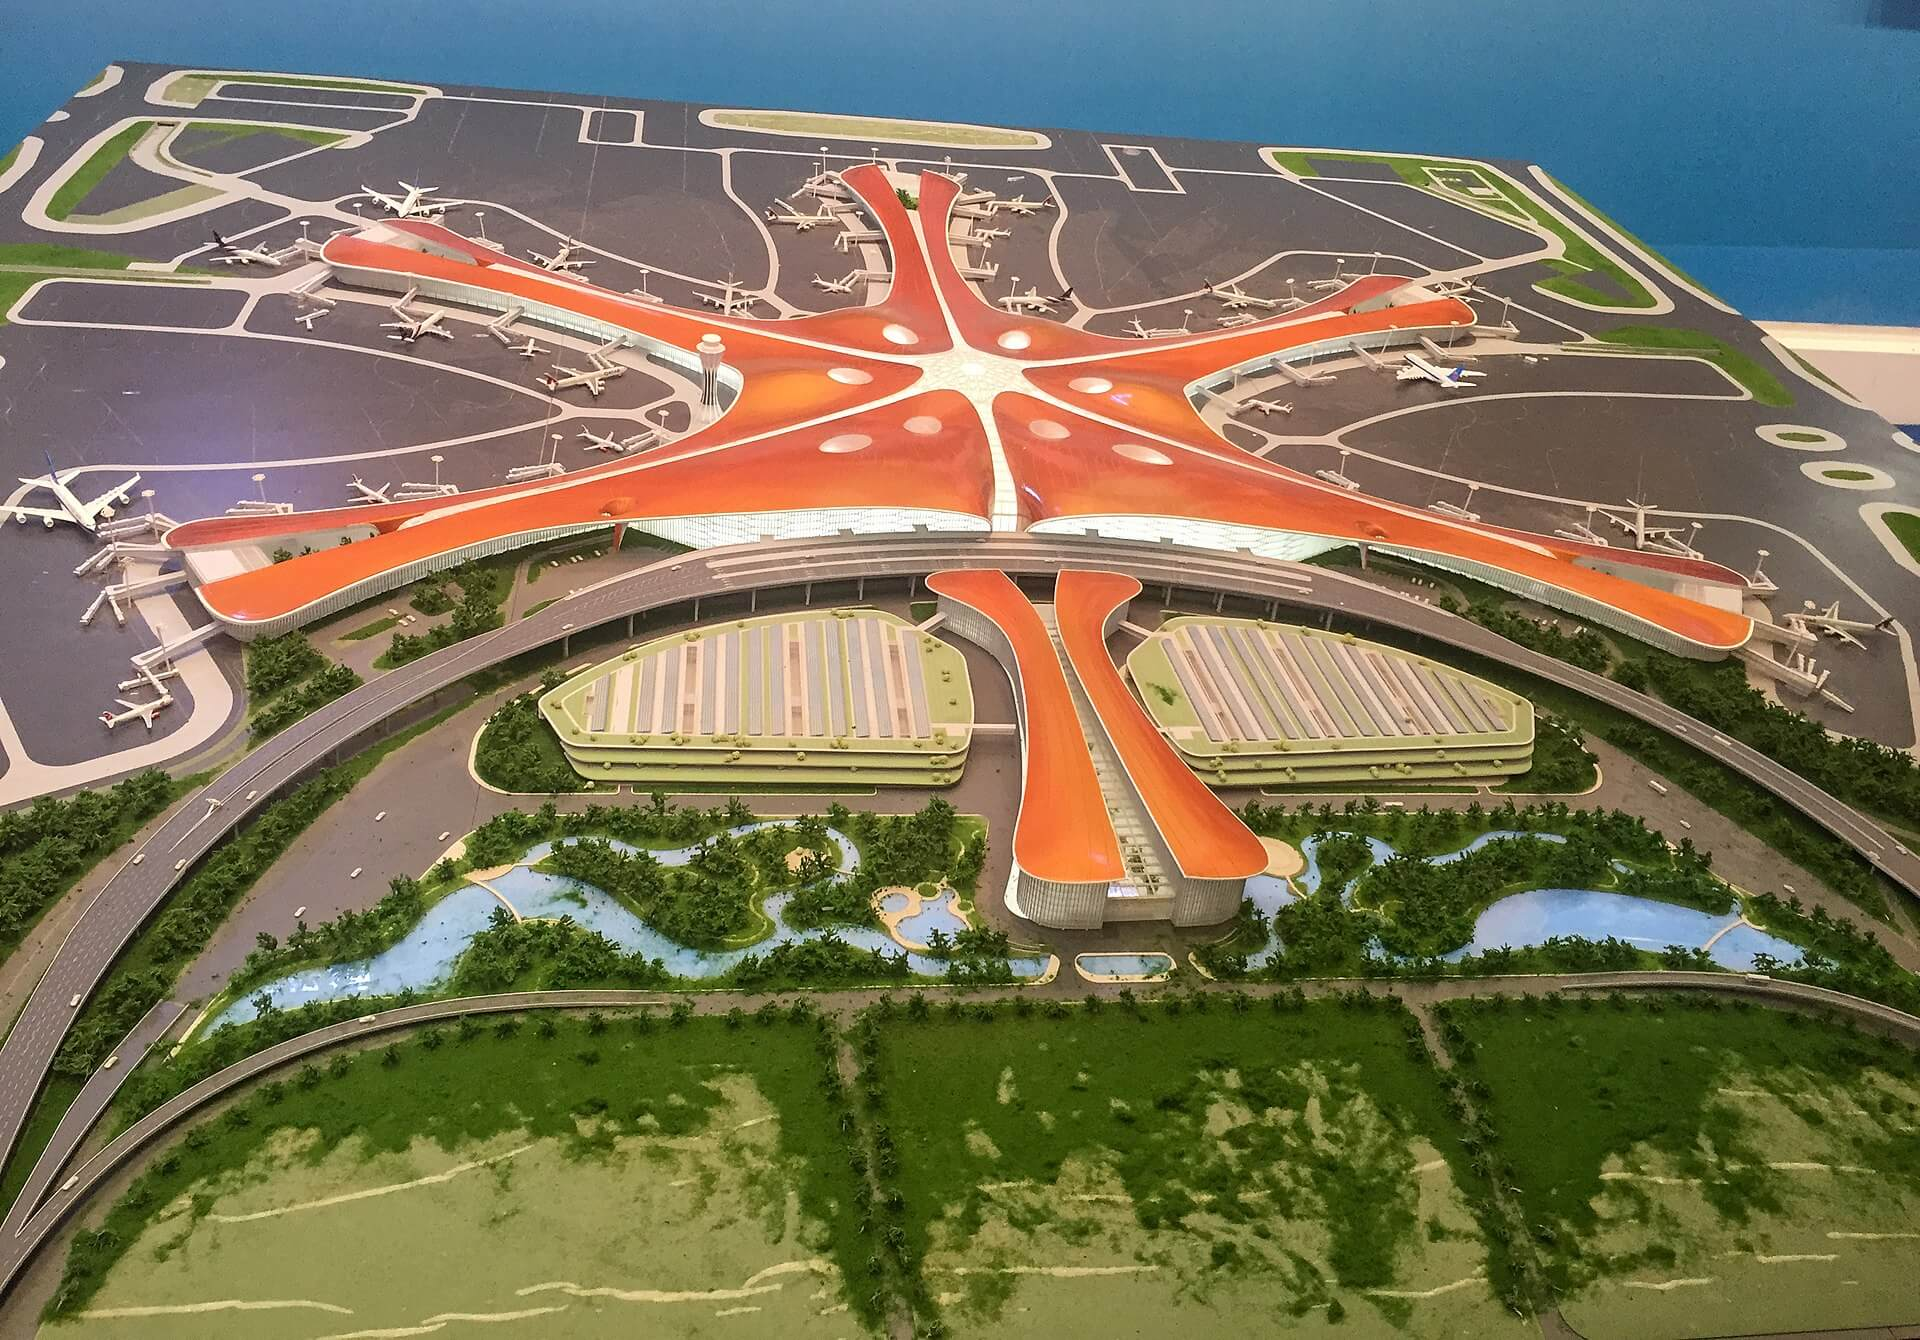 1920px-Model_Peking_New_Airport_at_the_Pět-Rok_Úspechy_Výstava_20171015150600